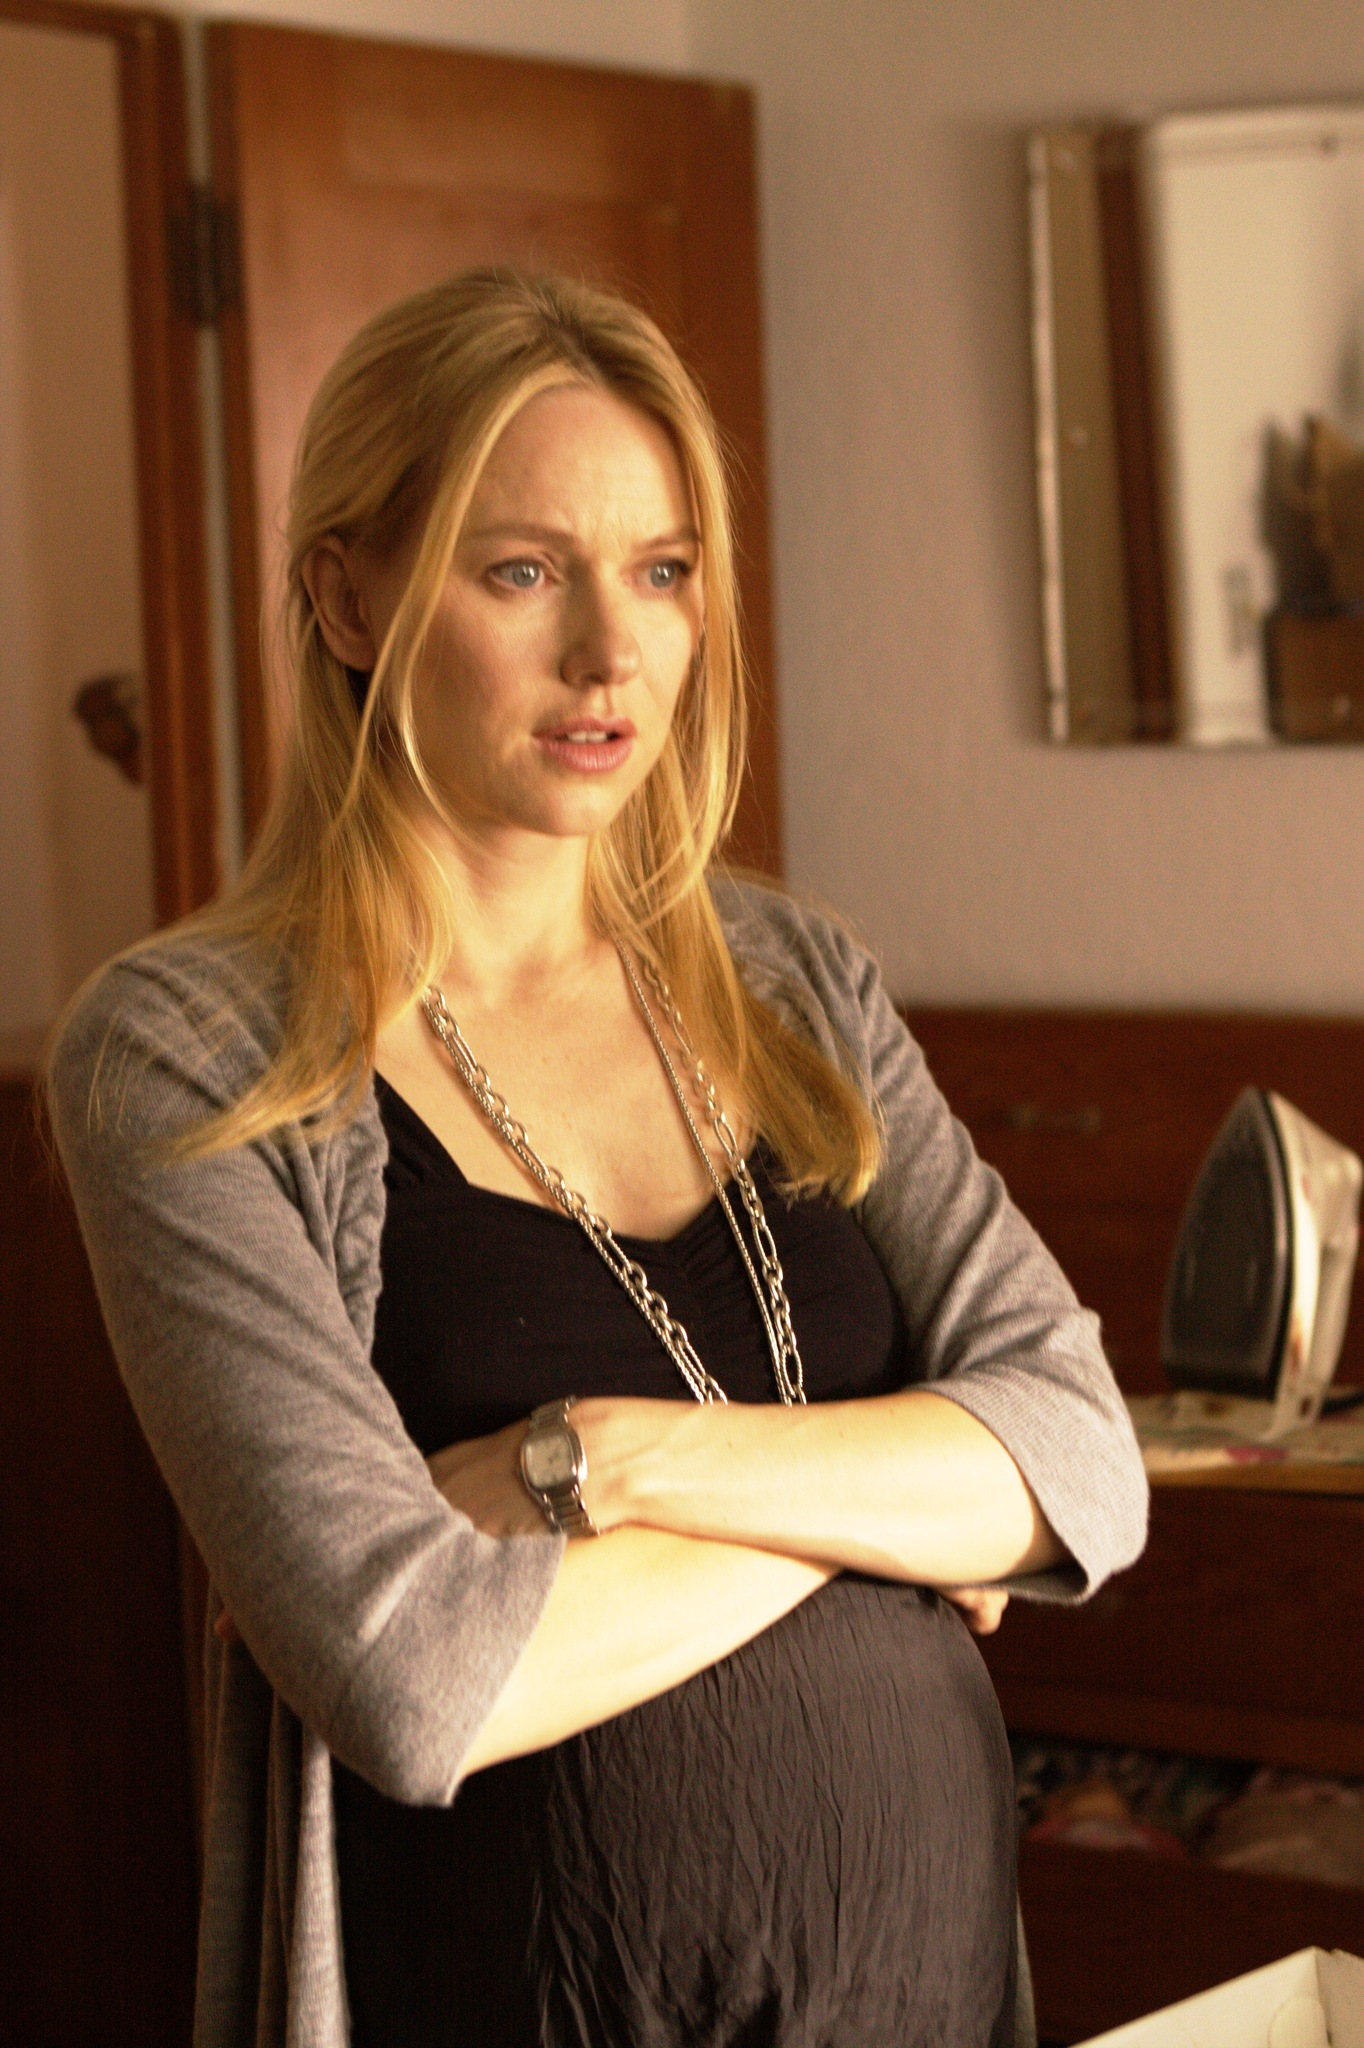 Naomi Watts in Mother and Child (2009)